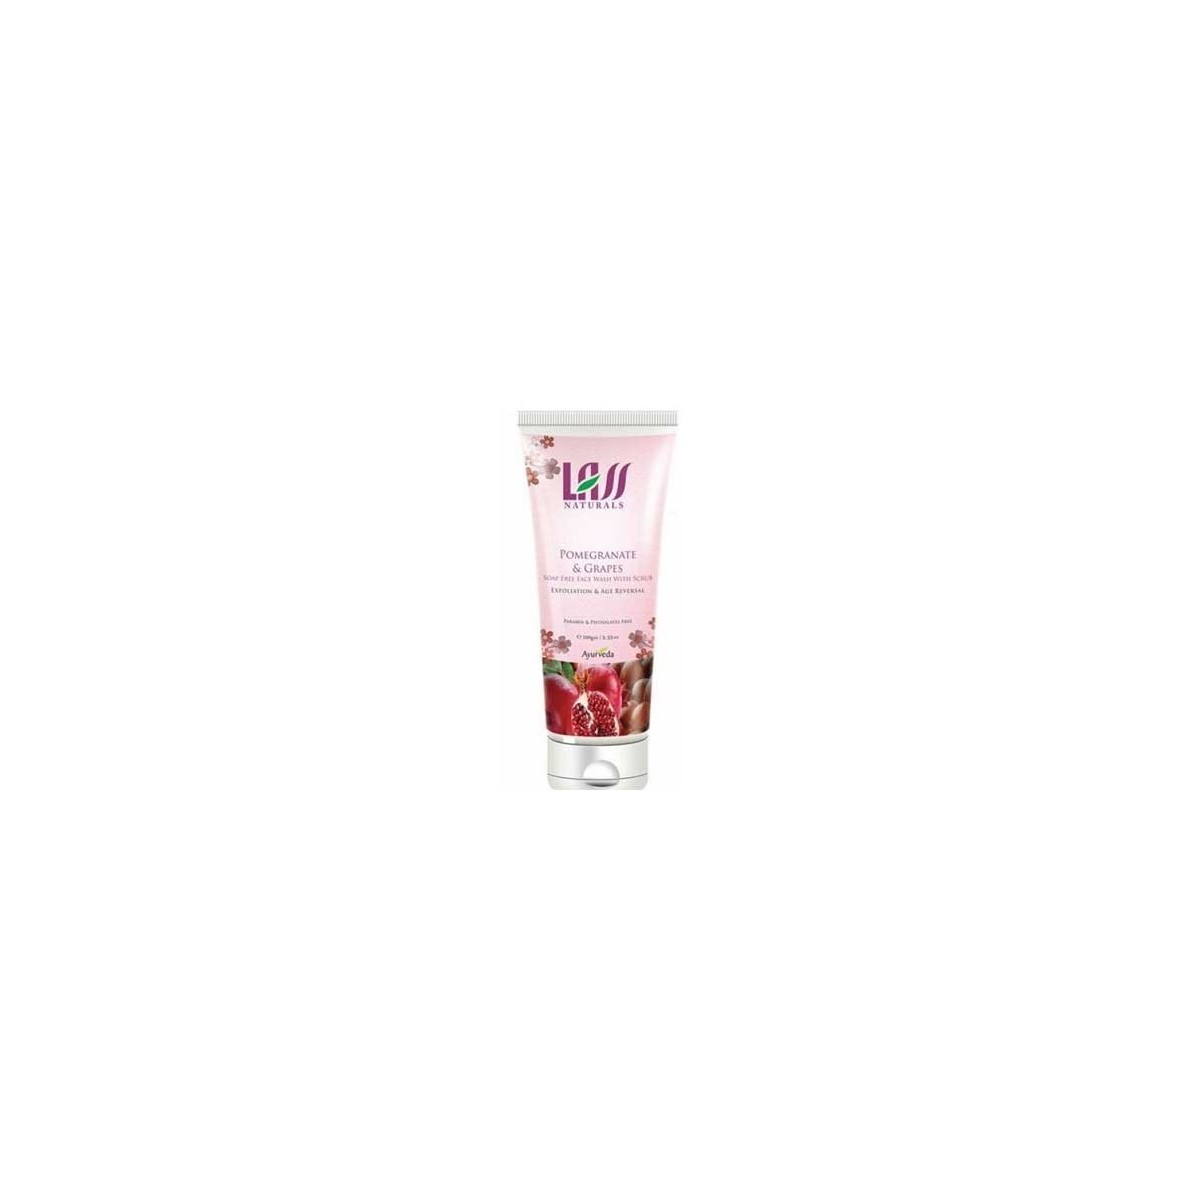 Lass Naturals Pomegranate & Grapes Face Wash With Scrub